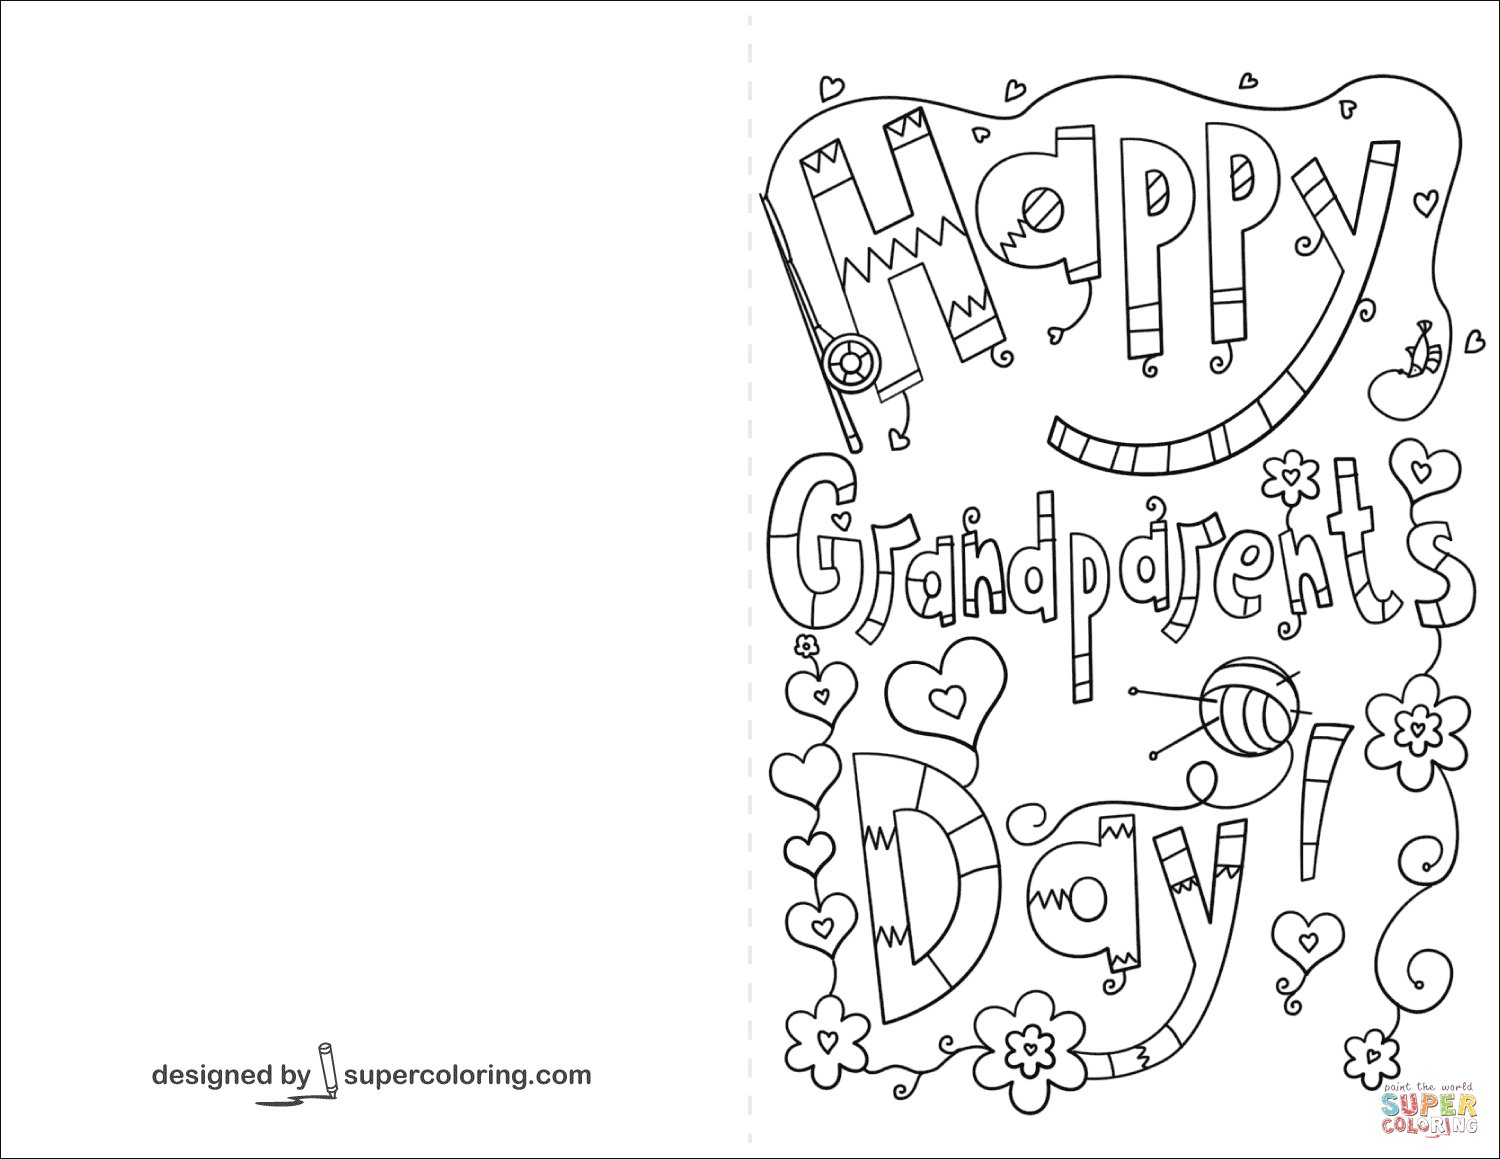 Happy Grandparents Day Doodle Card Coloring Page   Free Printable - Grandparents Day Cards Printable Free